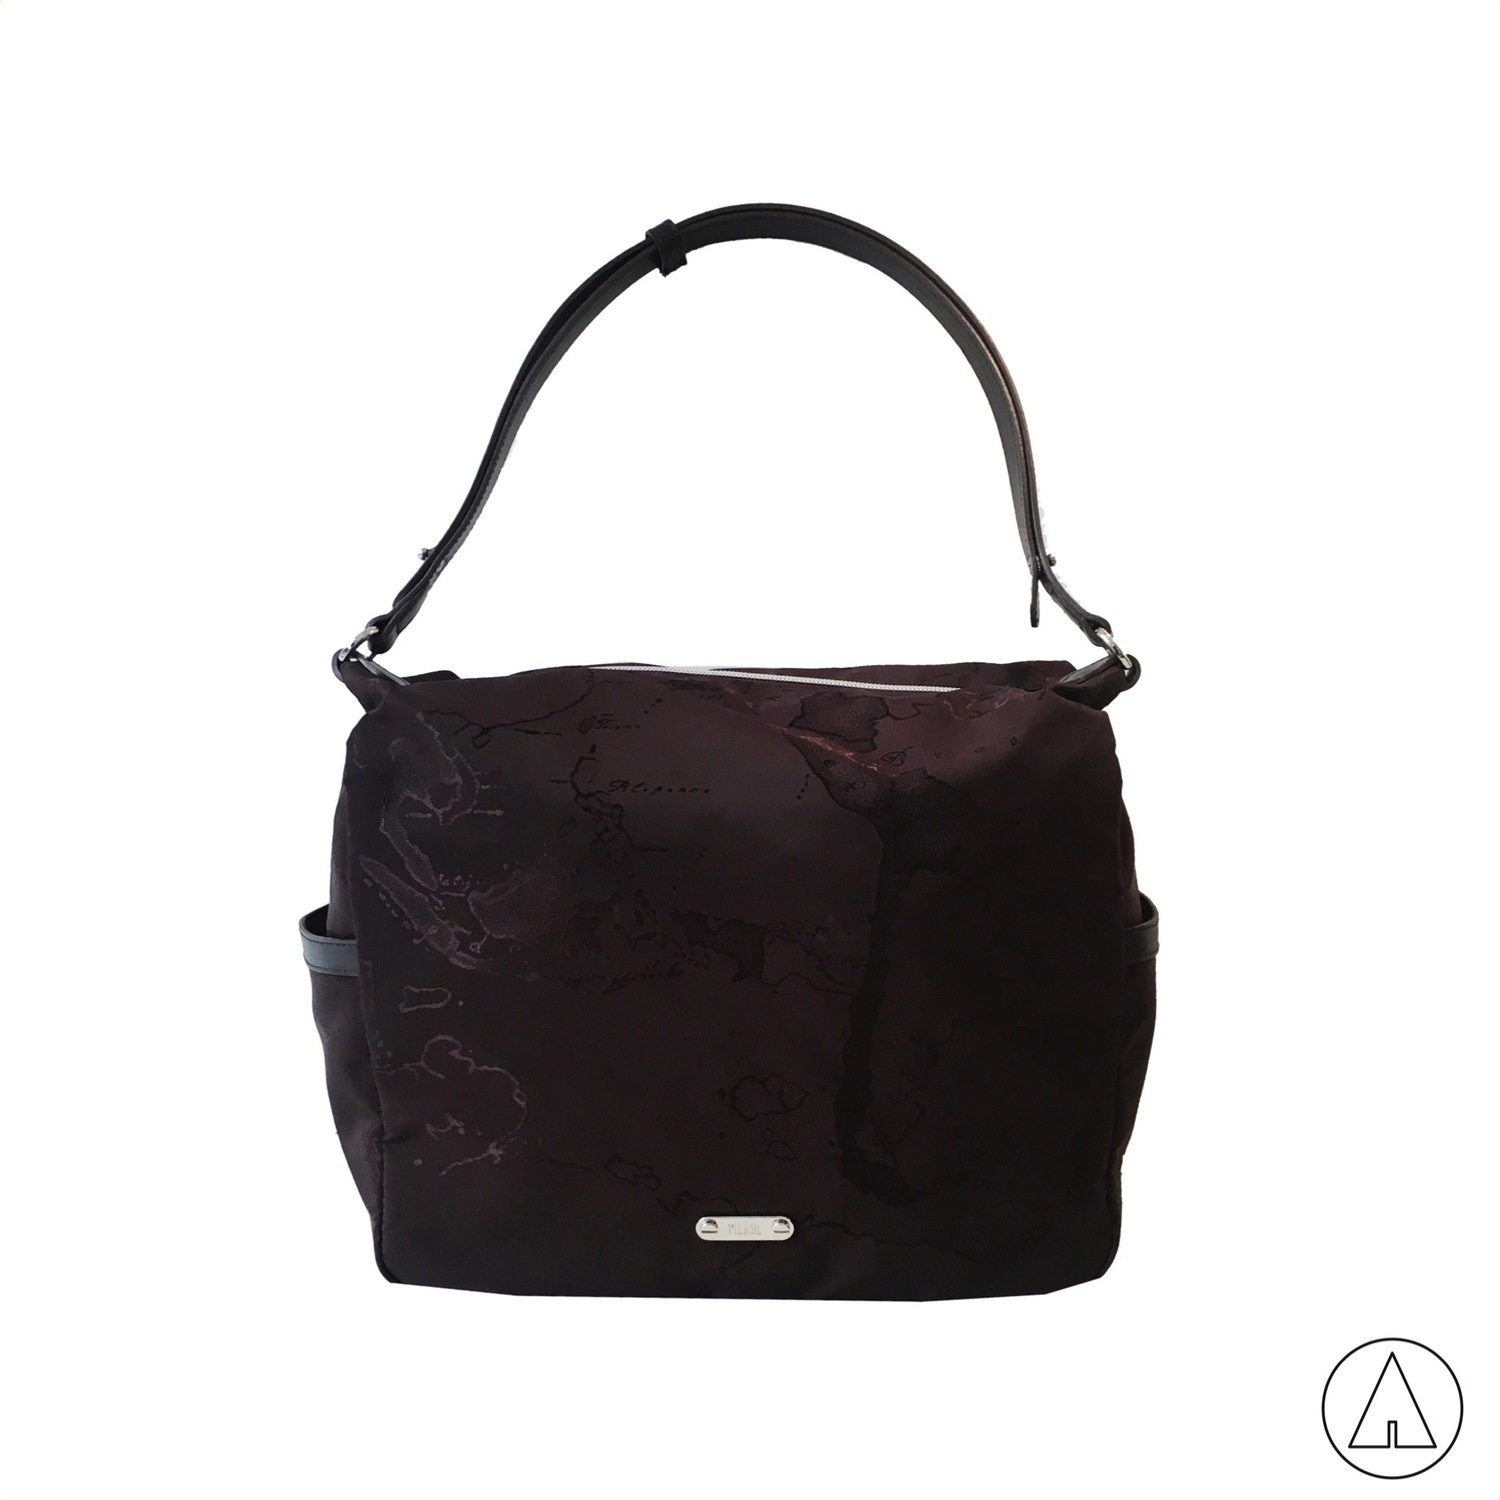 ALVIERO MARTINI - Nylon Map Sottospalla hobo media - Chocolat